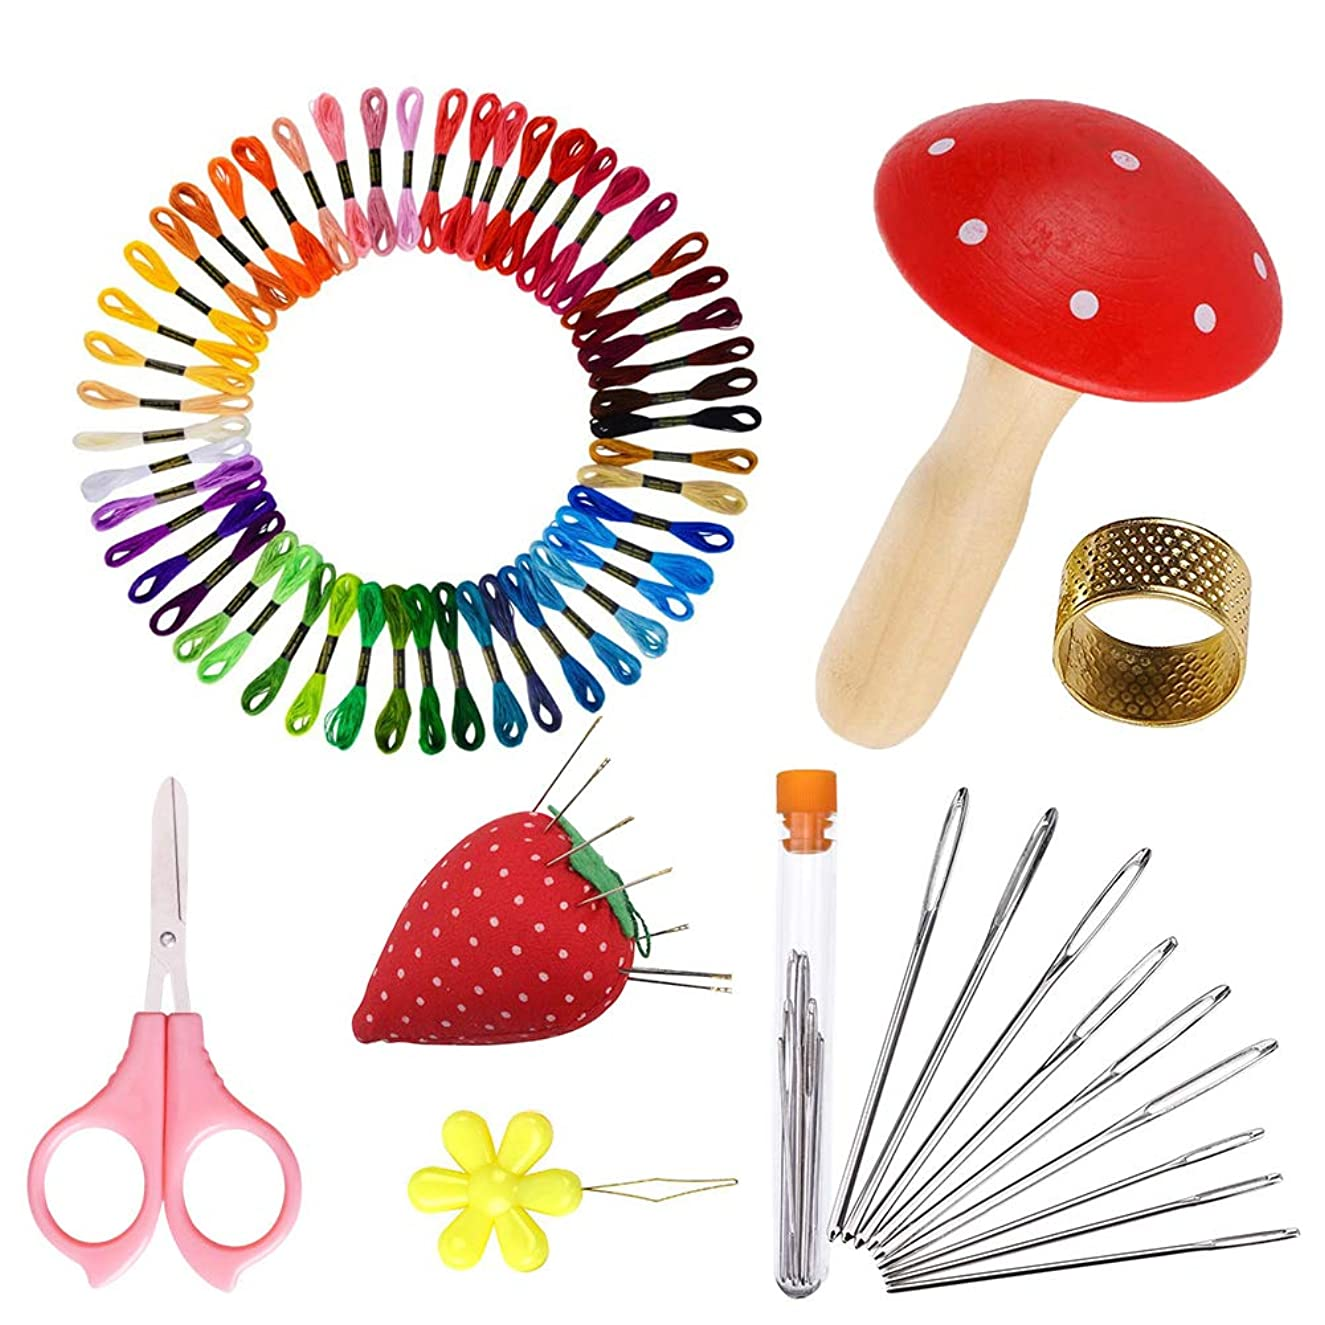 COPYLOVE Premium Kit Sewing Set with Cute Wood Darning Mushroom Darning Supplies Very Useful for Beginners, Emergency, Kids, Summer Campers, Travel and Home.